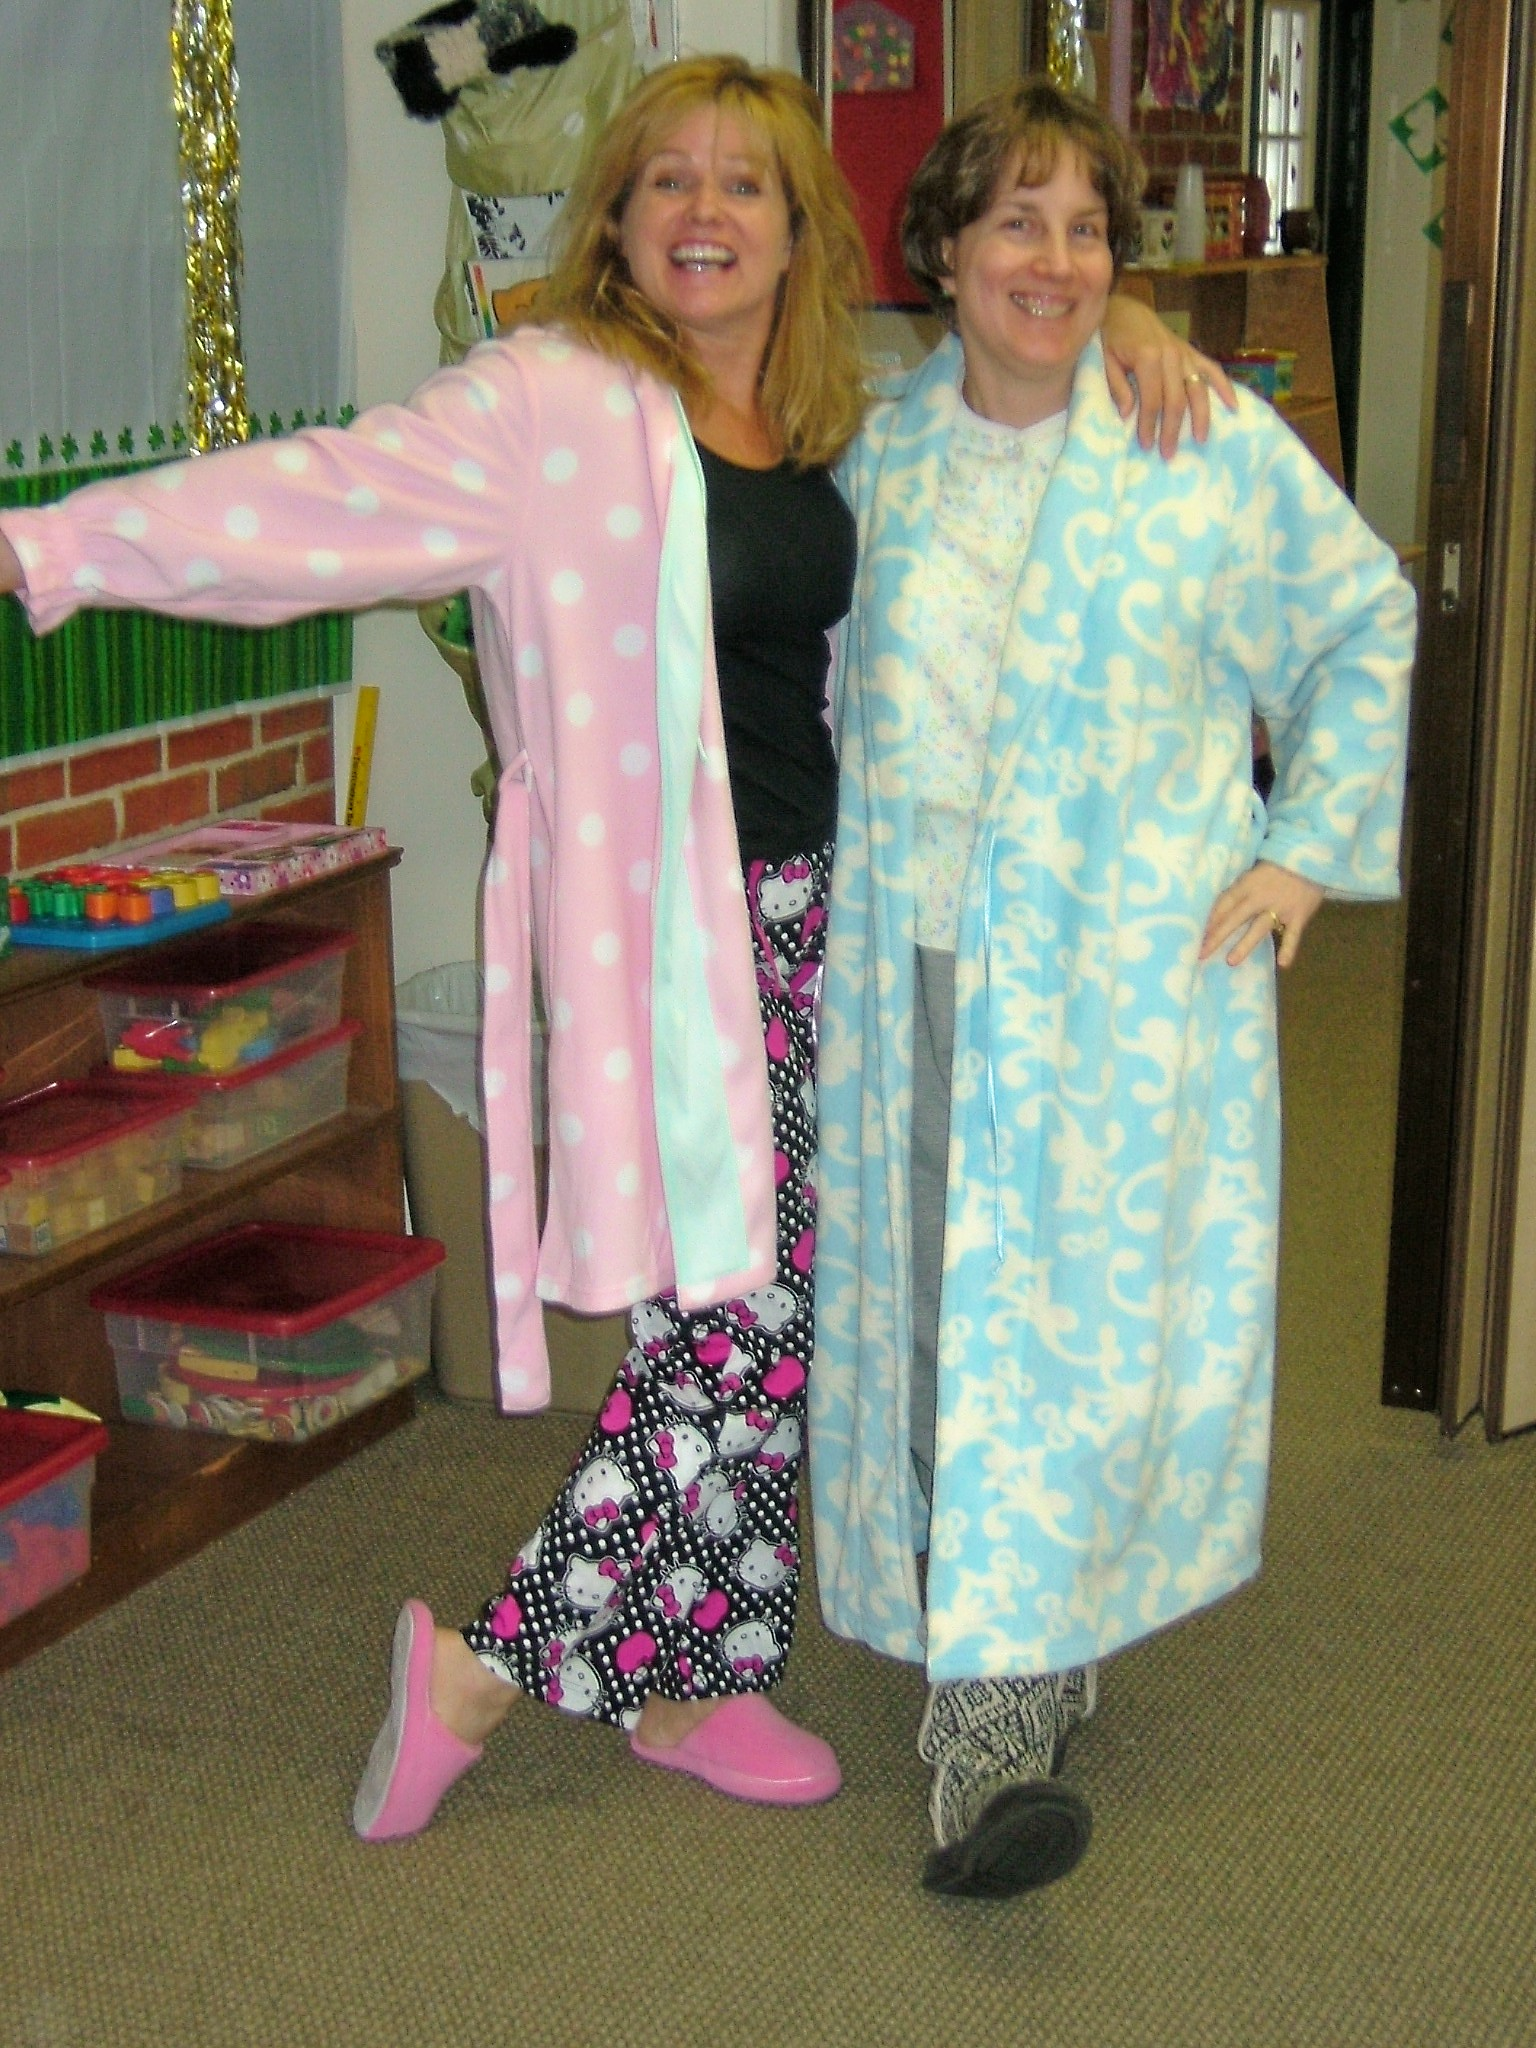 Staff in pajamas for Pajama Day